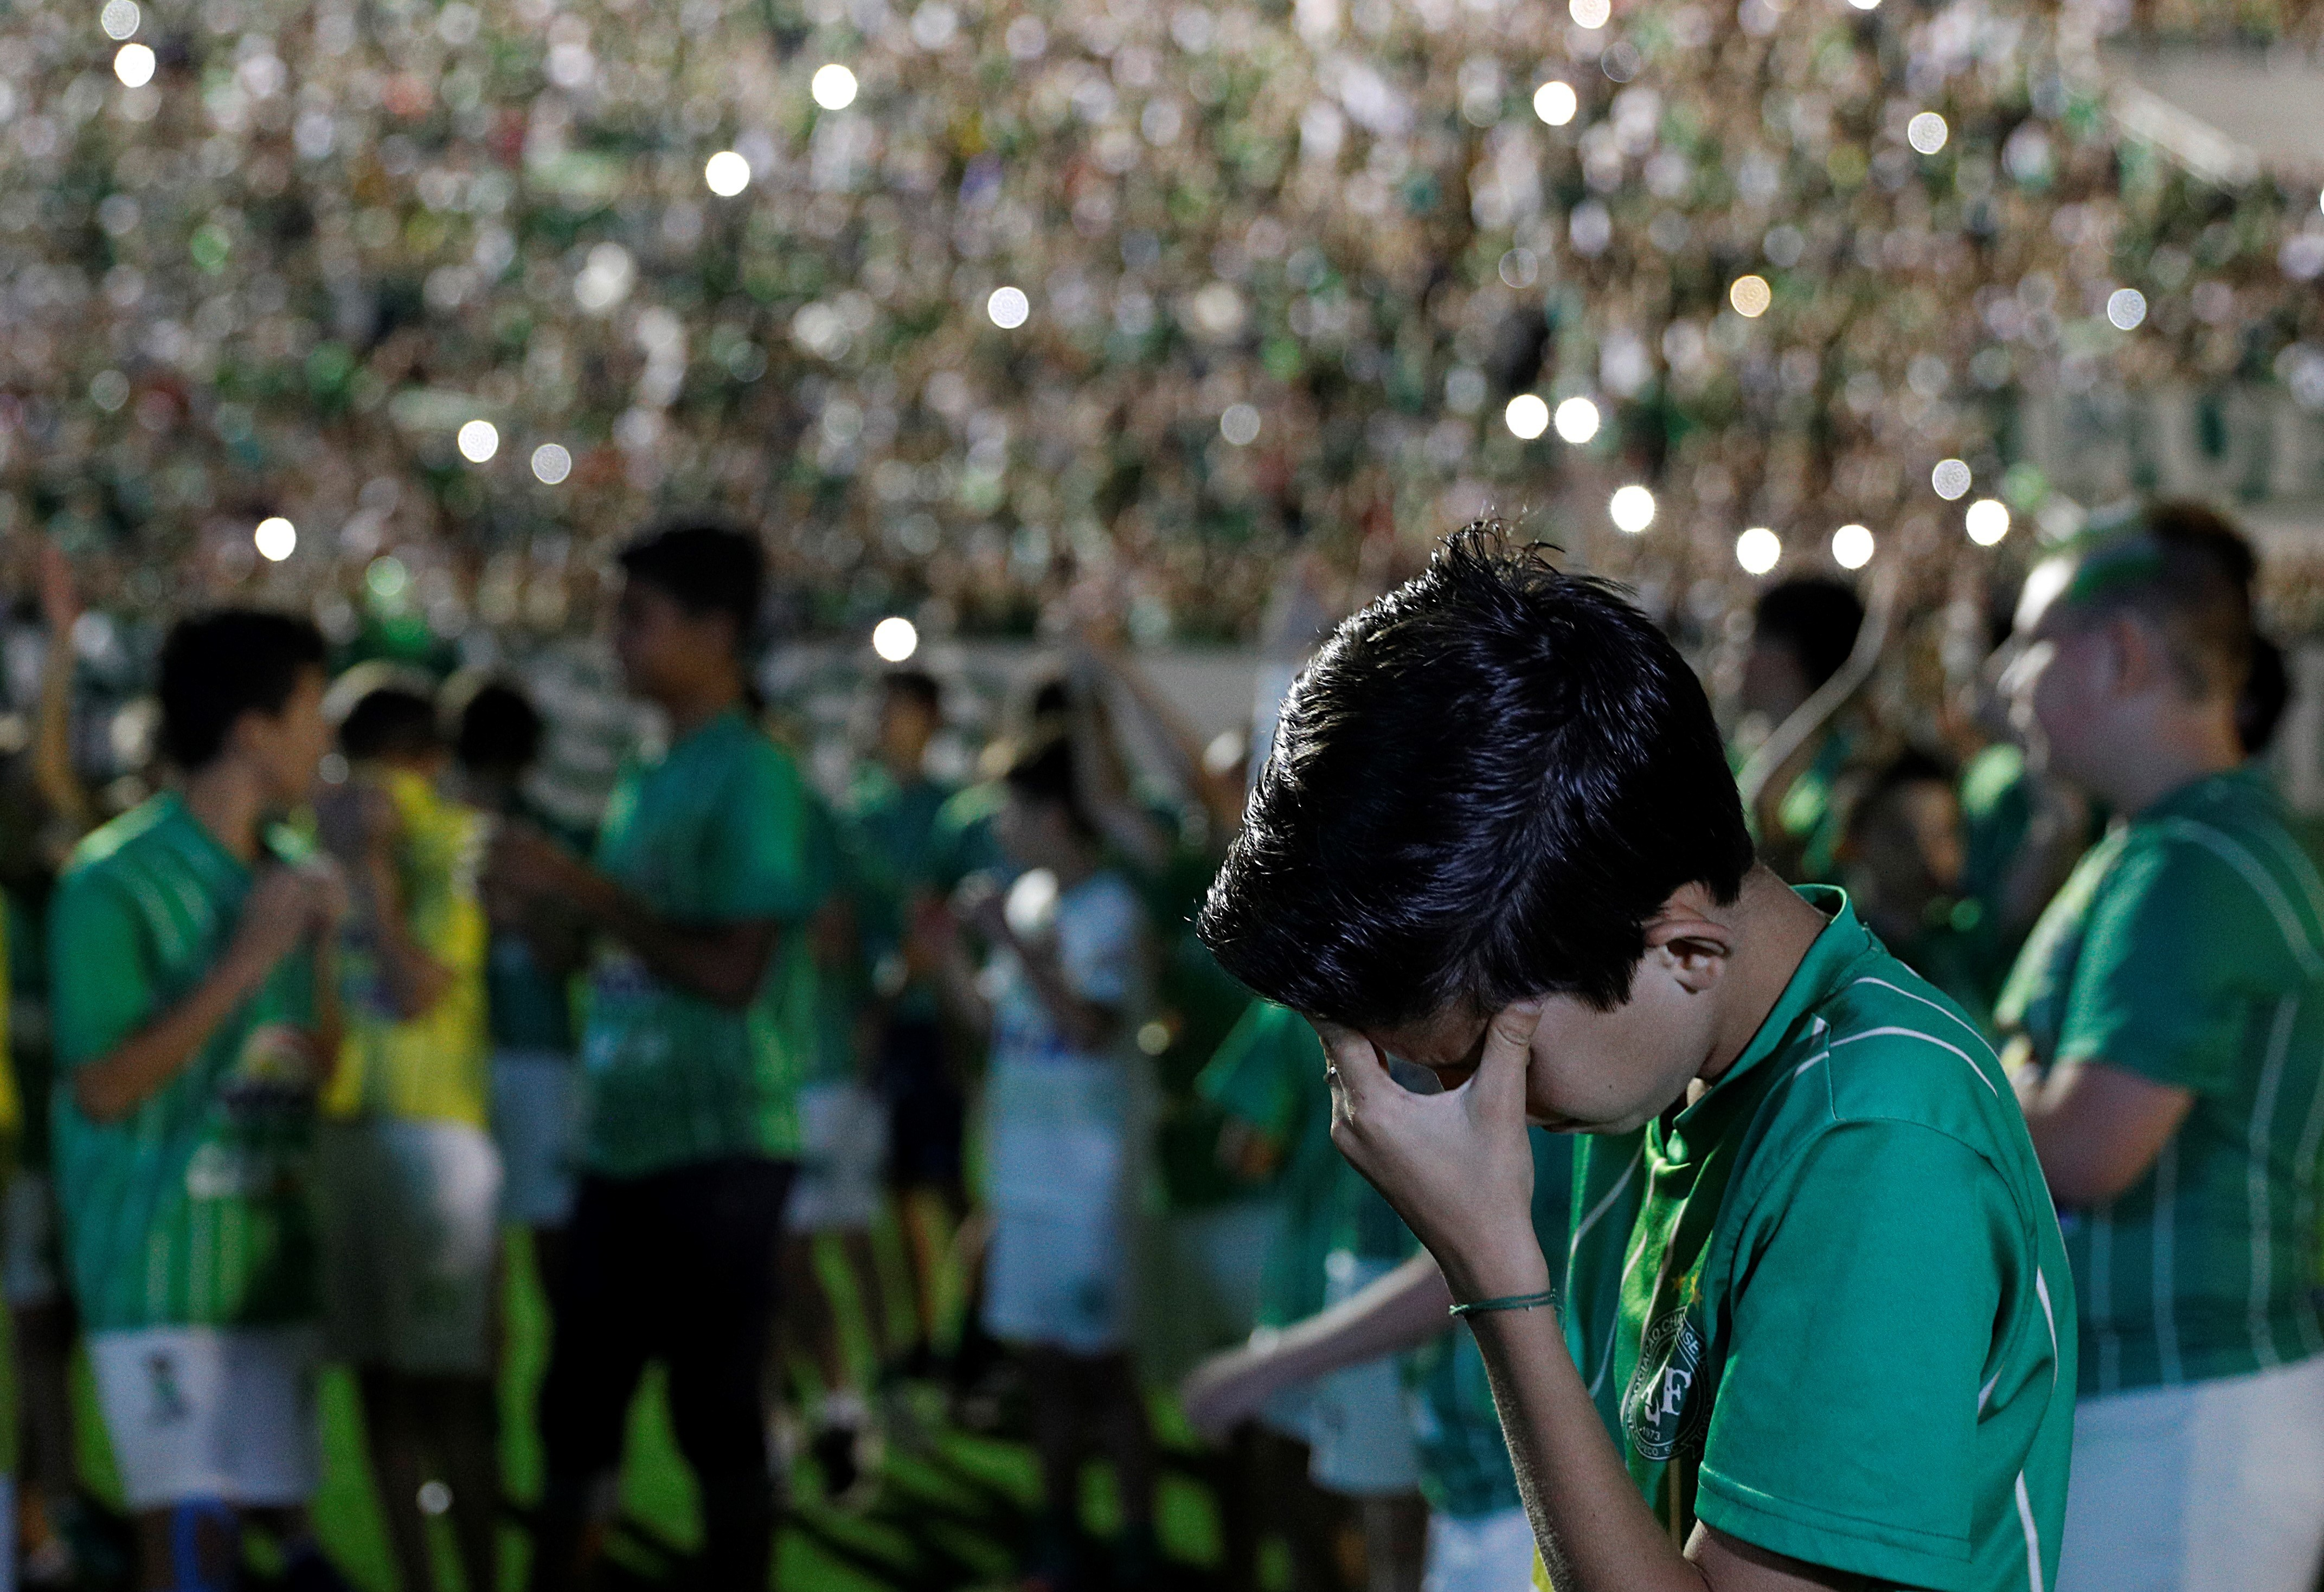 Fans of Chapecoense pay tribute to the players of the Brazilian soccer team on Wednesday.